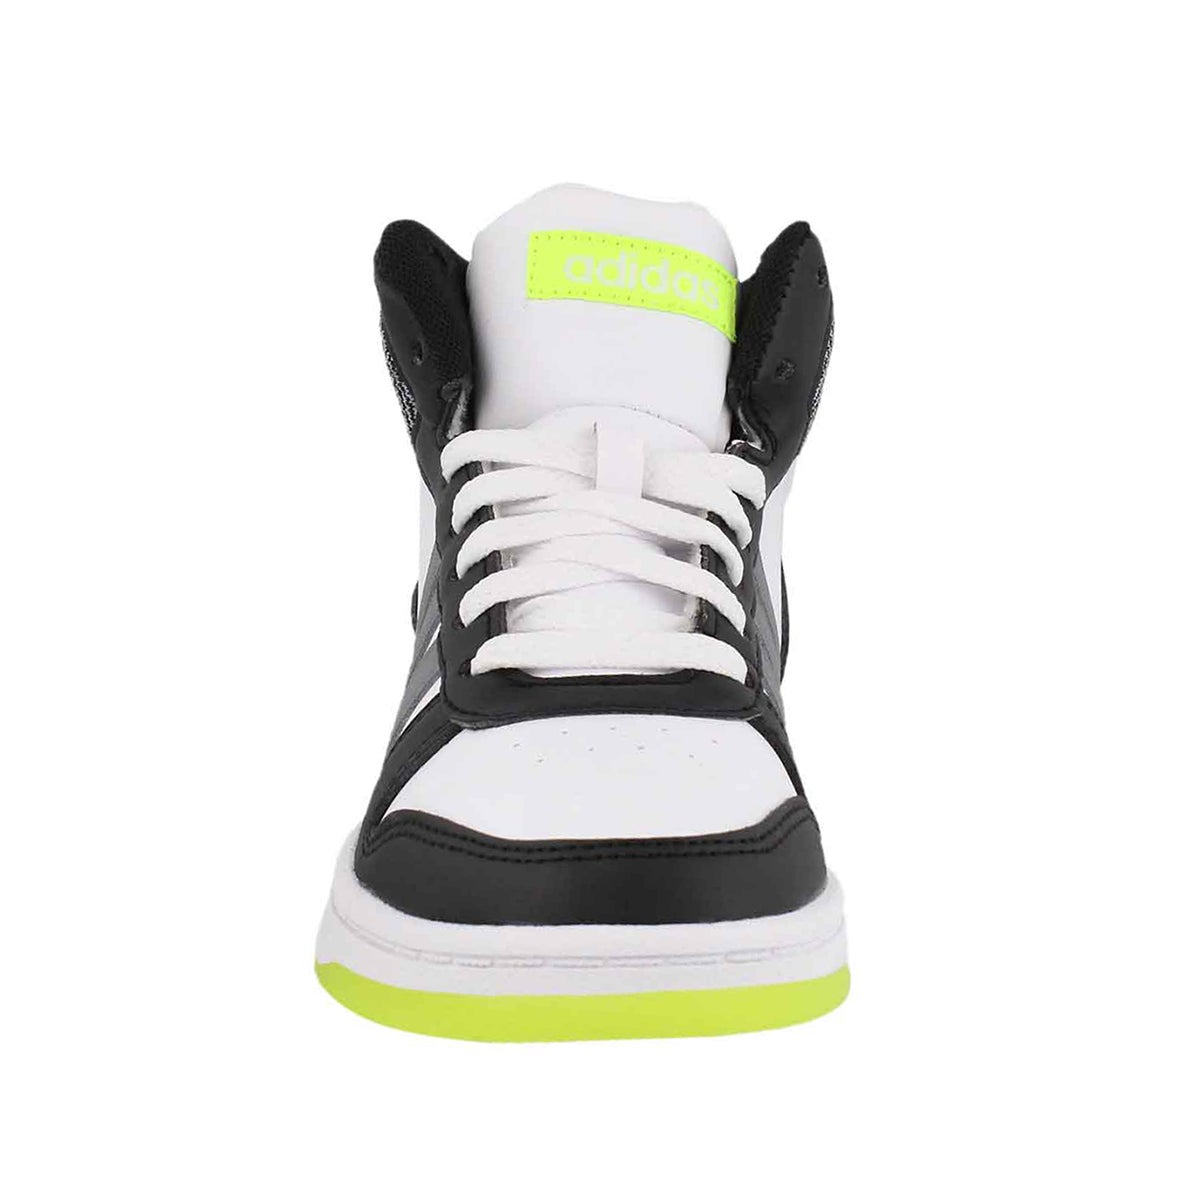 Bys V5 Hoops Mid 2.0 wht/gry/blk sneaker